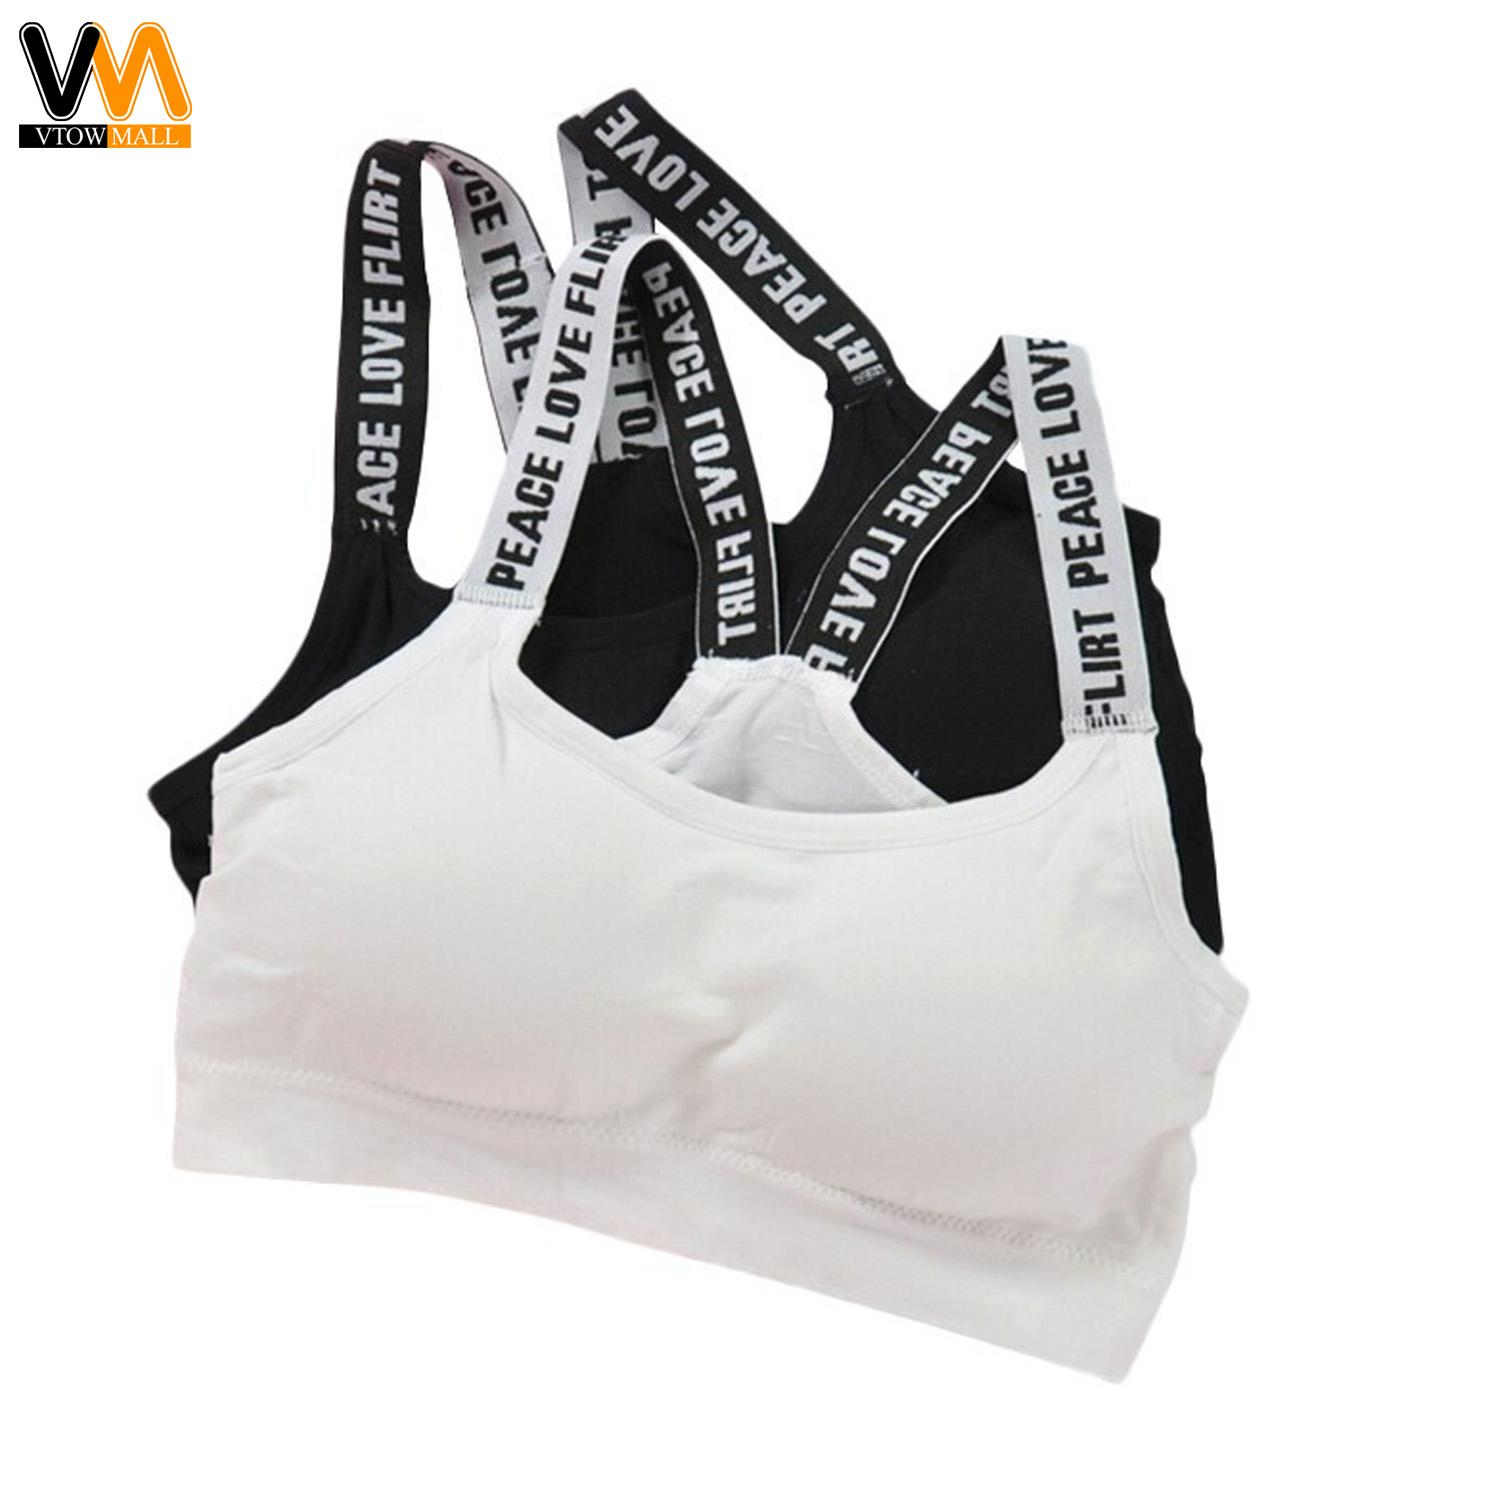 371d6cf8f93b0 Sports Clothing For Women for sale - Womens Sports Attire online ...